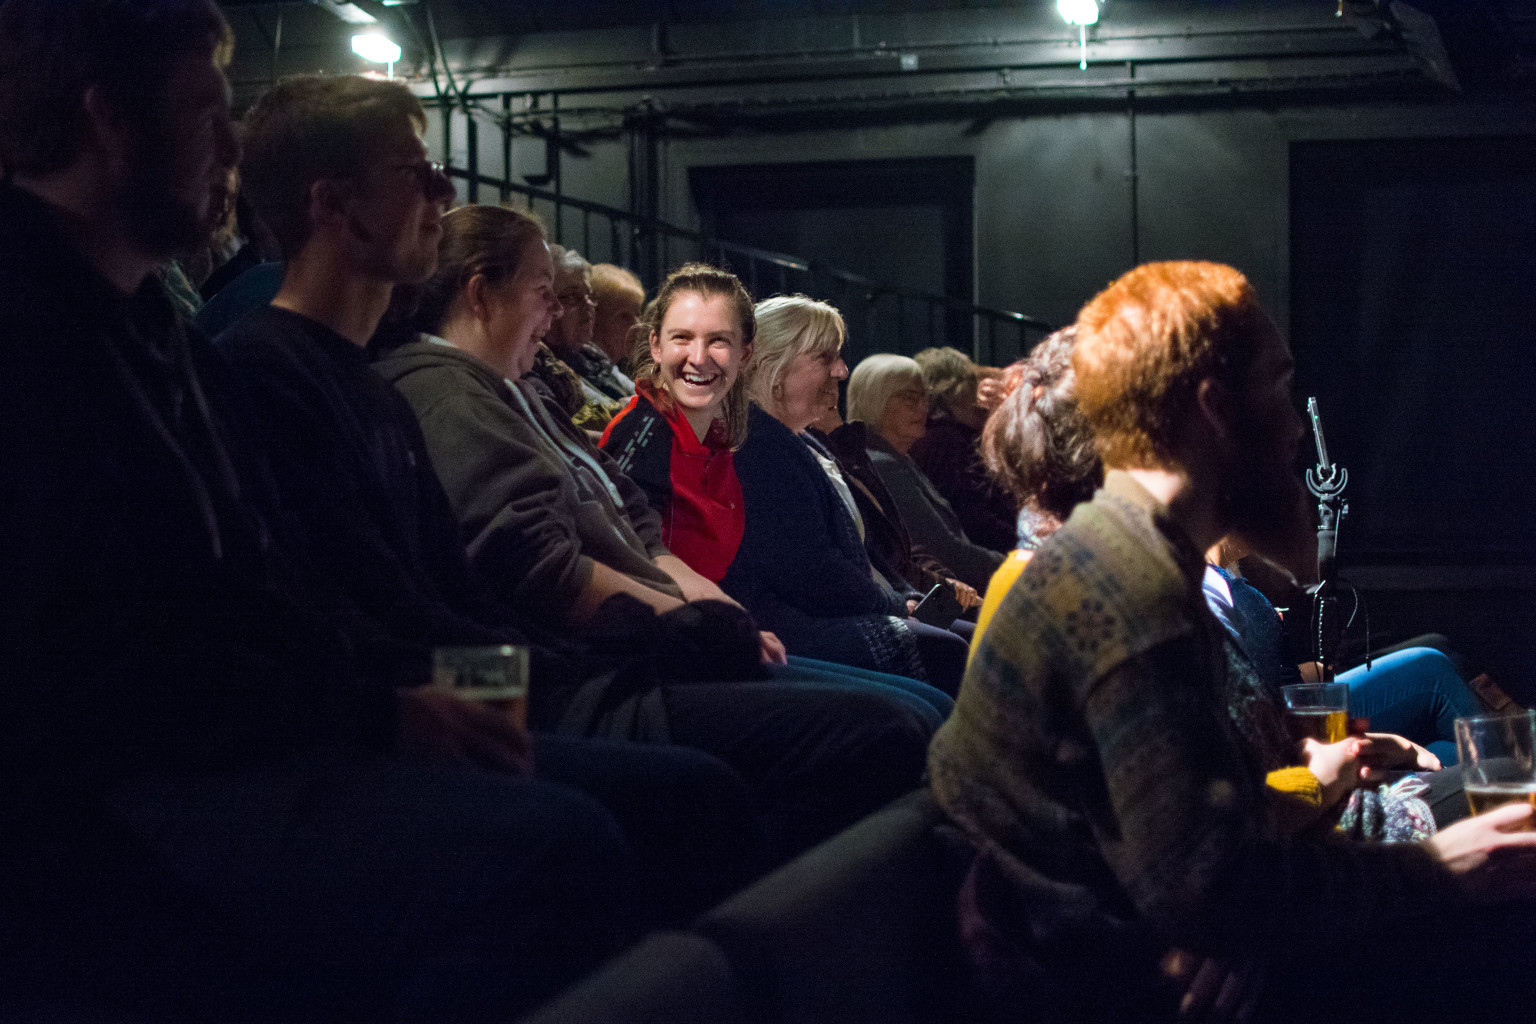 An audience in a dark studio space, one person grinning is spotlighted in the centre of the photograph